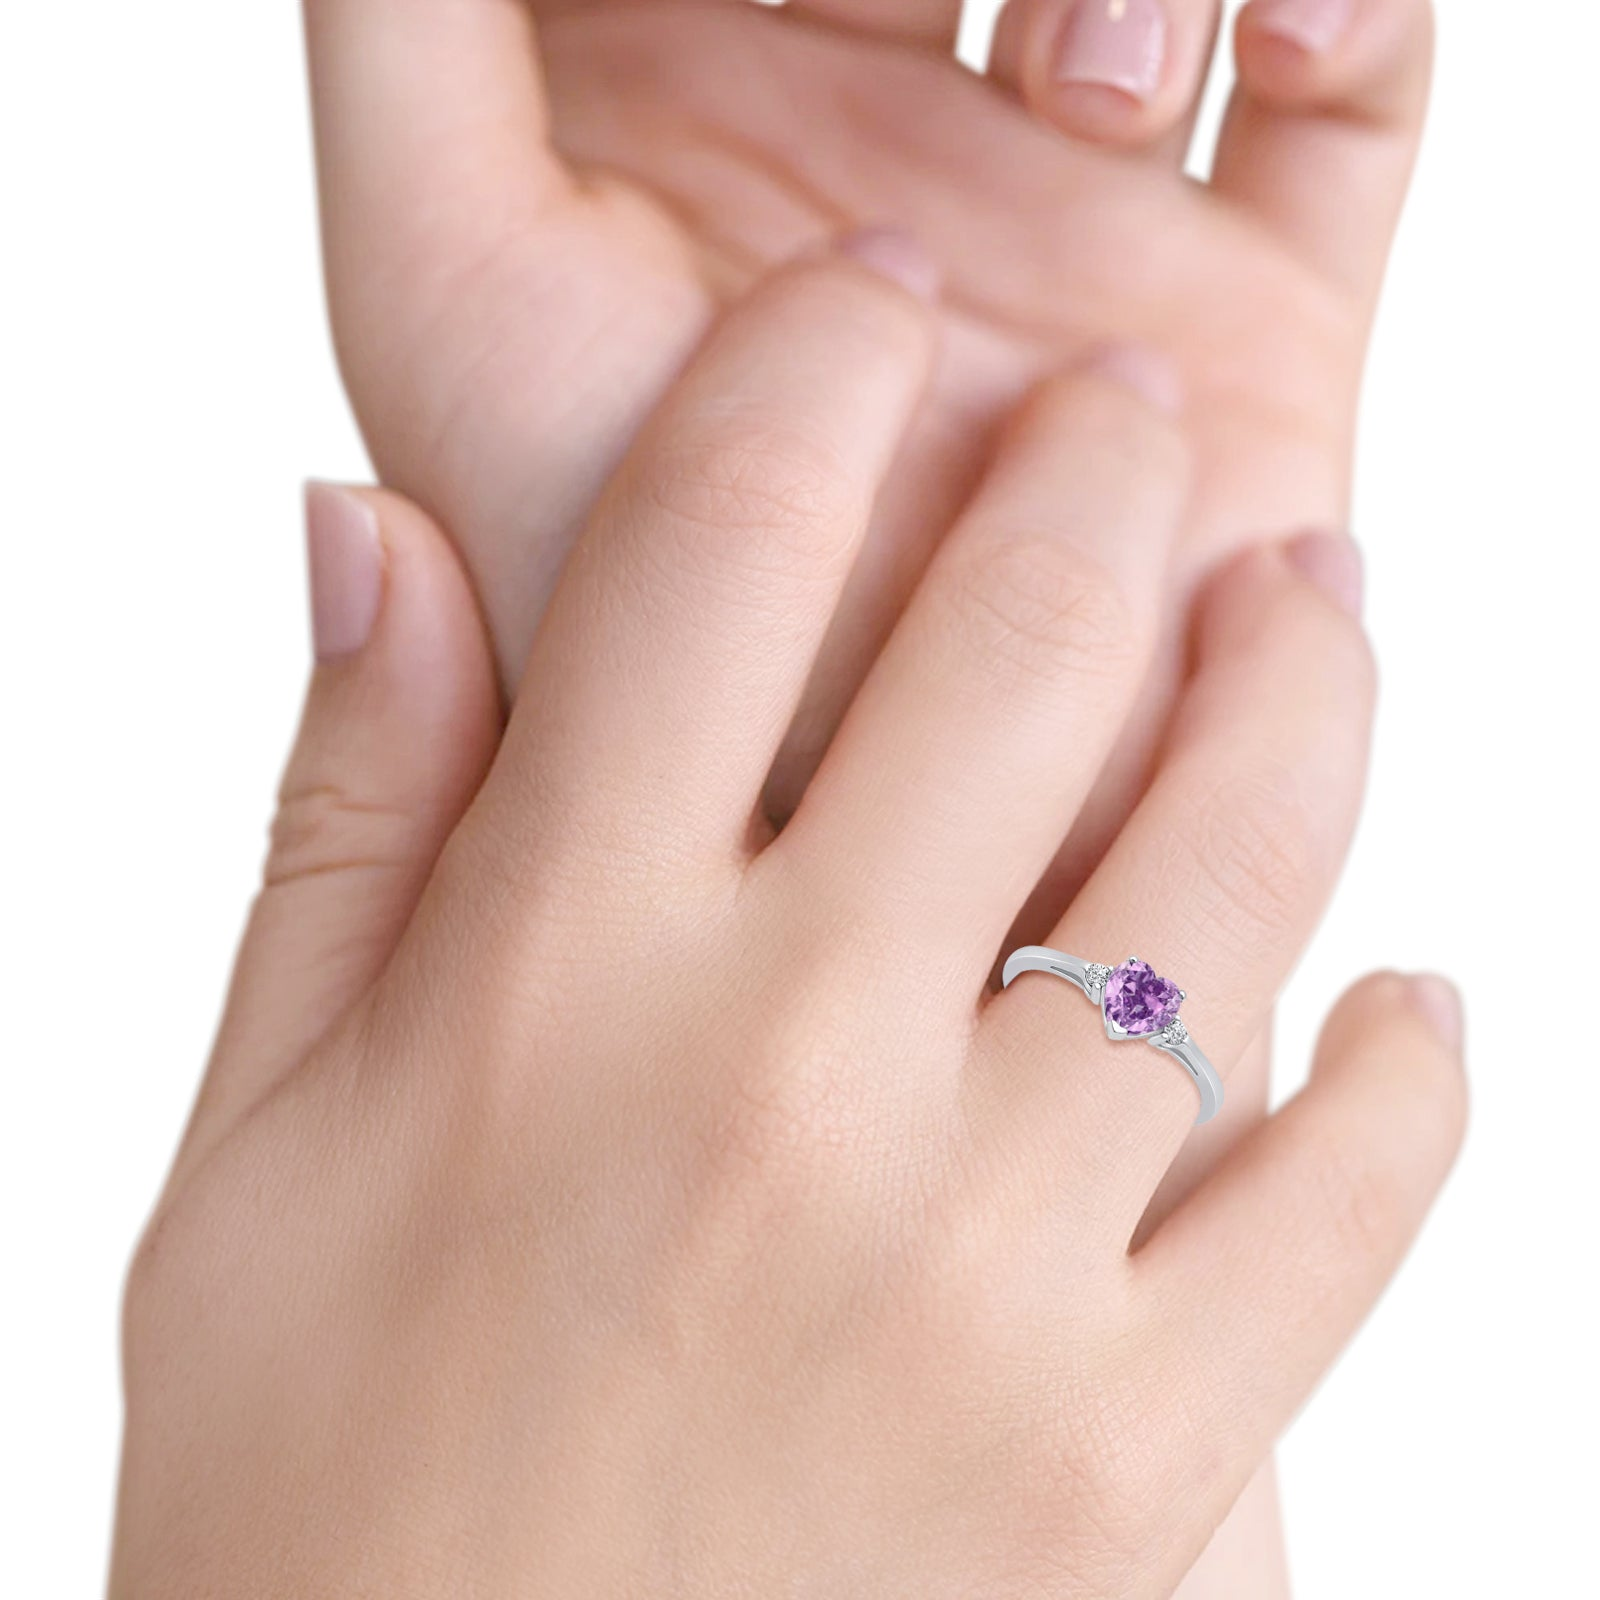 Heart Promise Engagement Ring Simulated Lavender CZ 925 Sterling Silver